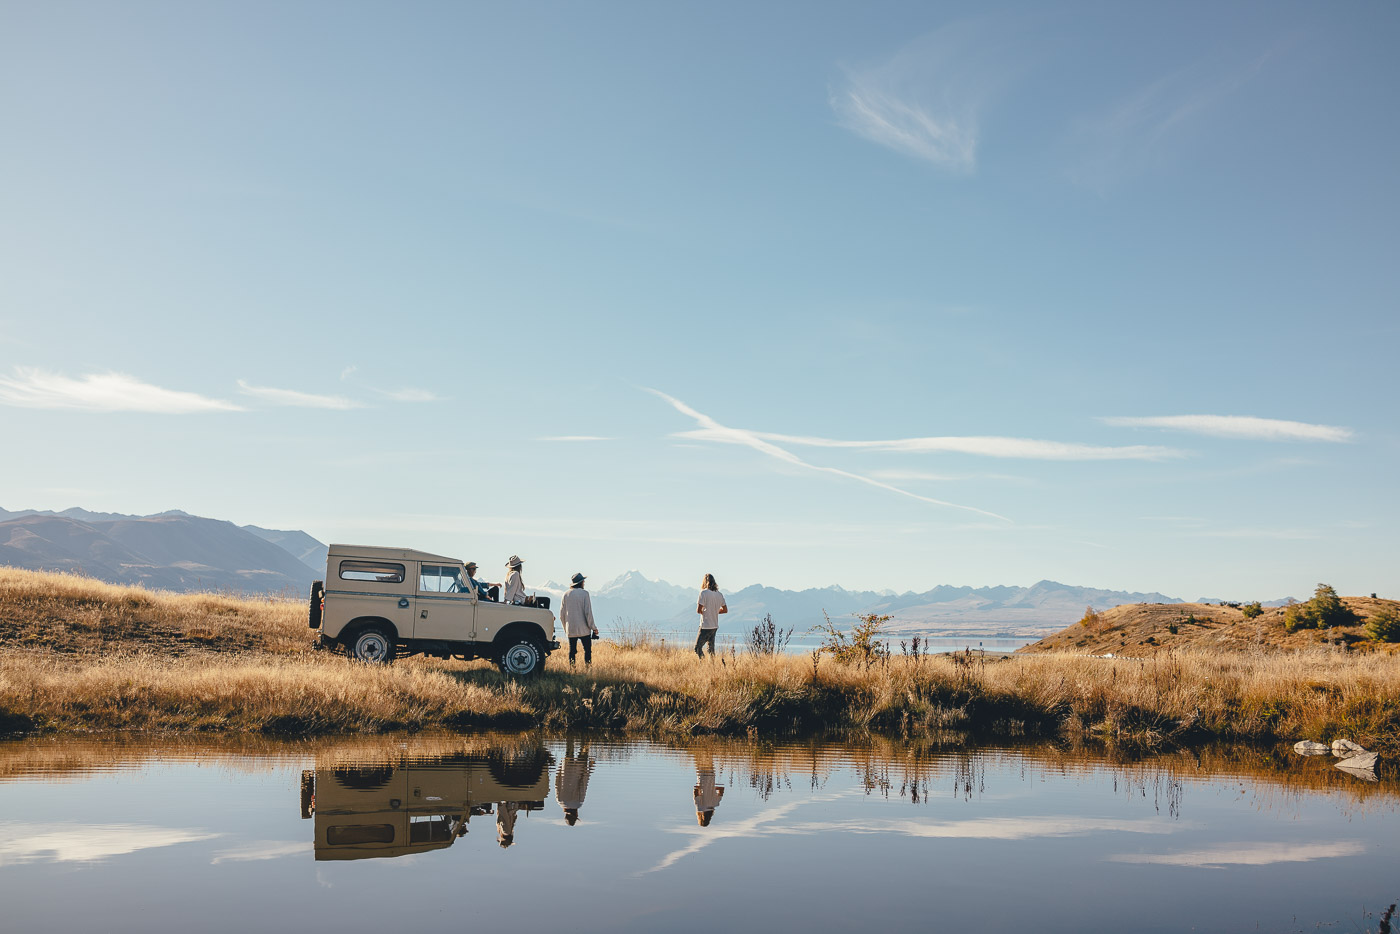 Friends sitting on the Land Rover enjoying the views over Lake Pukaki